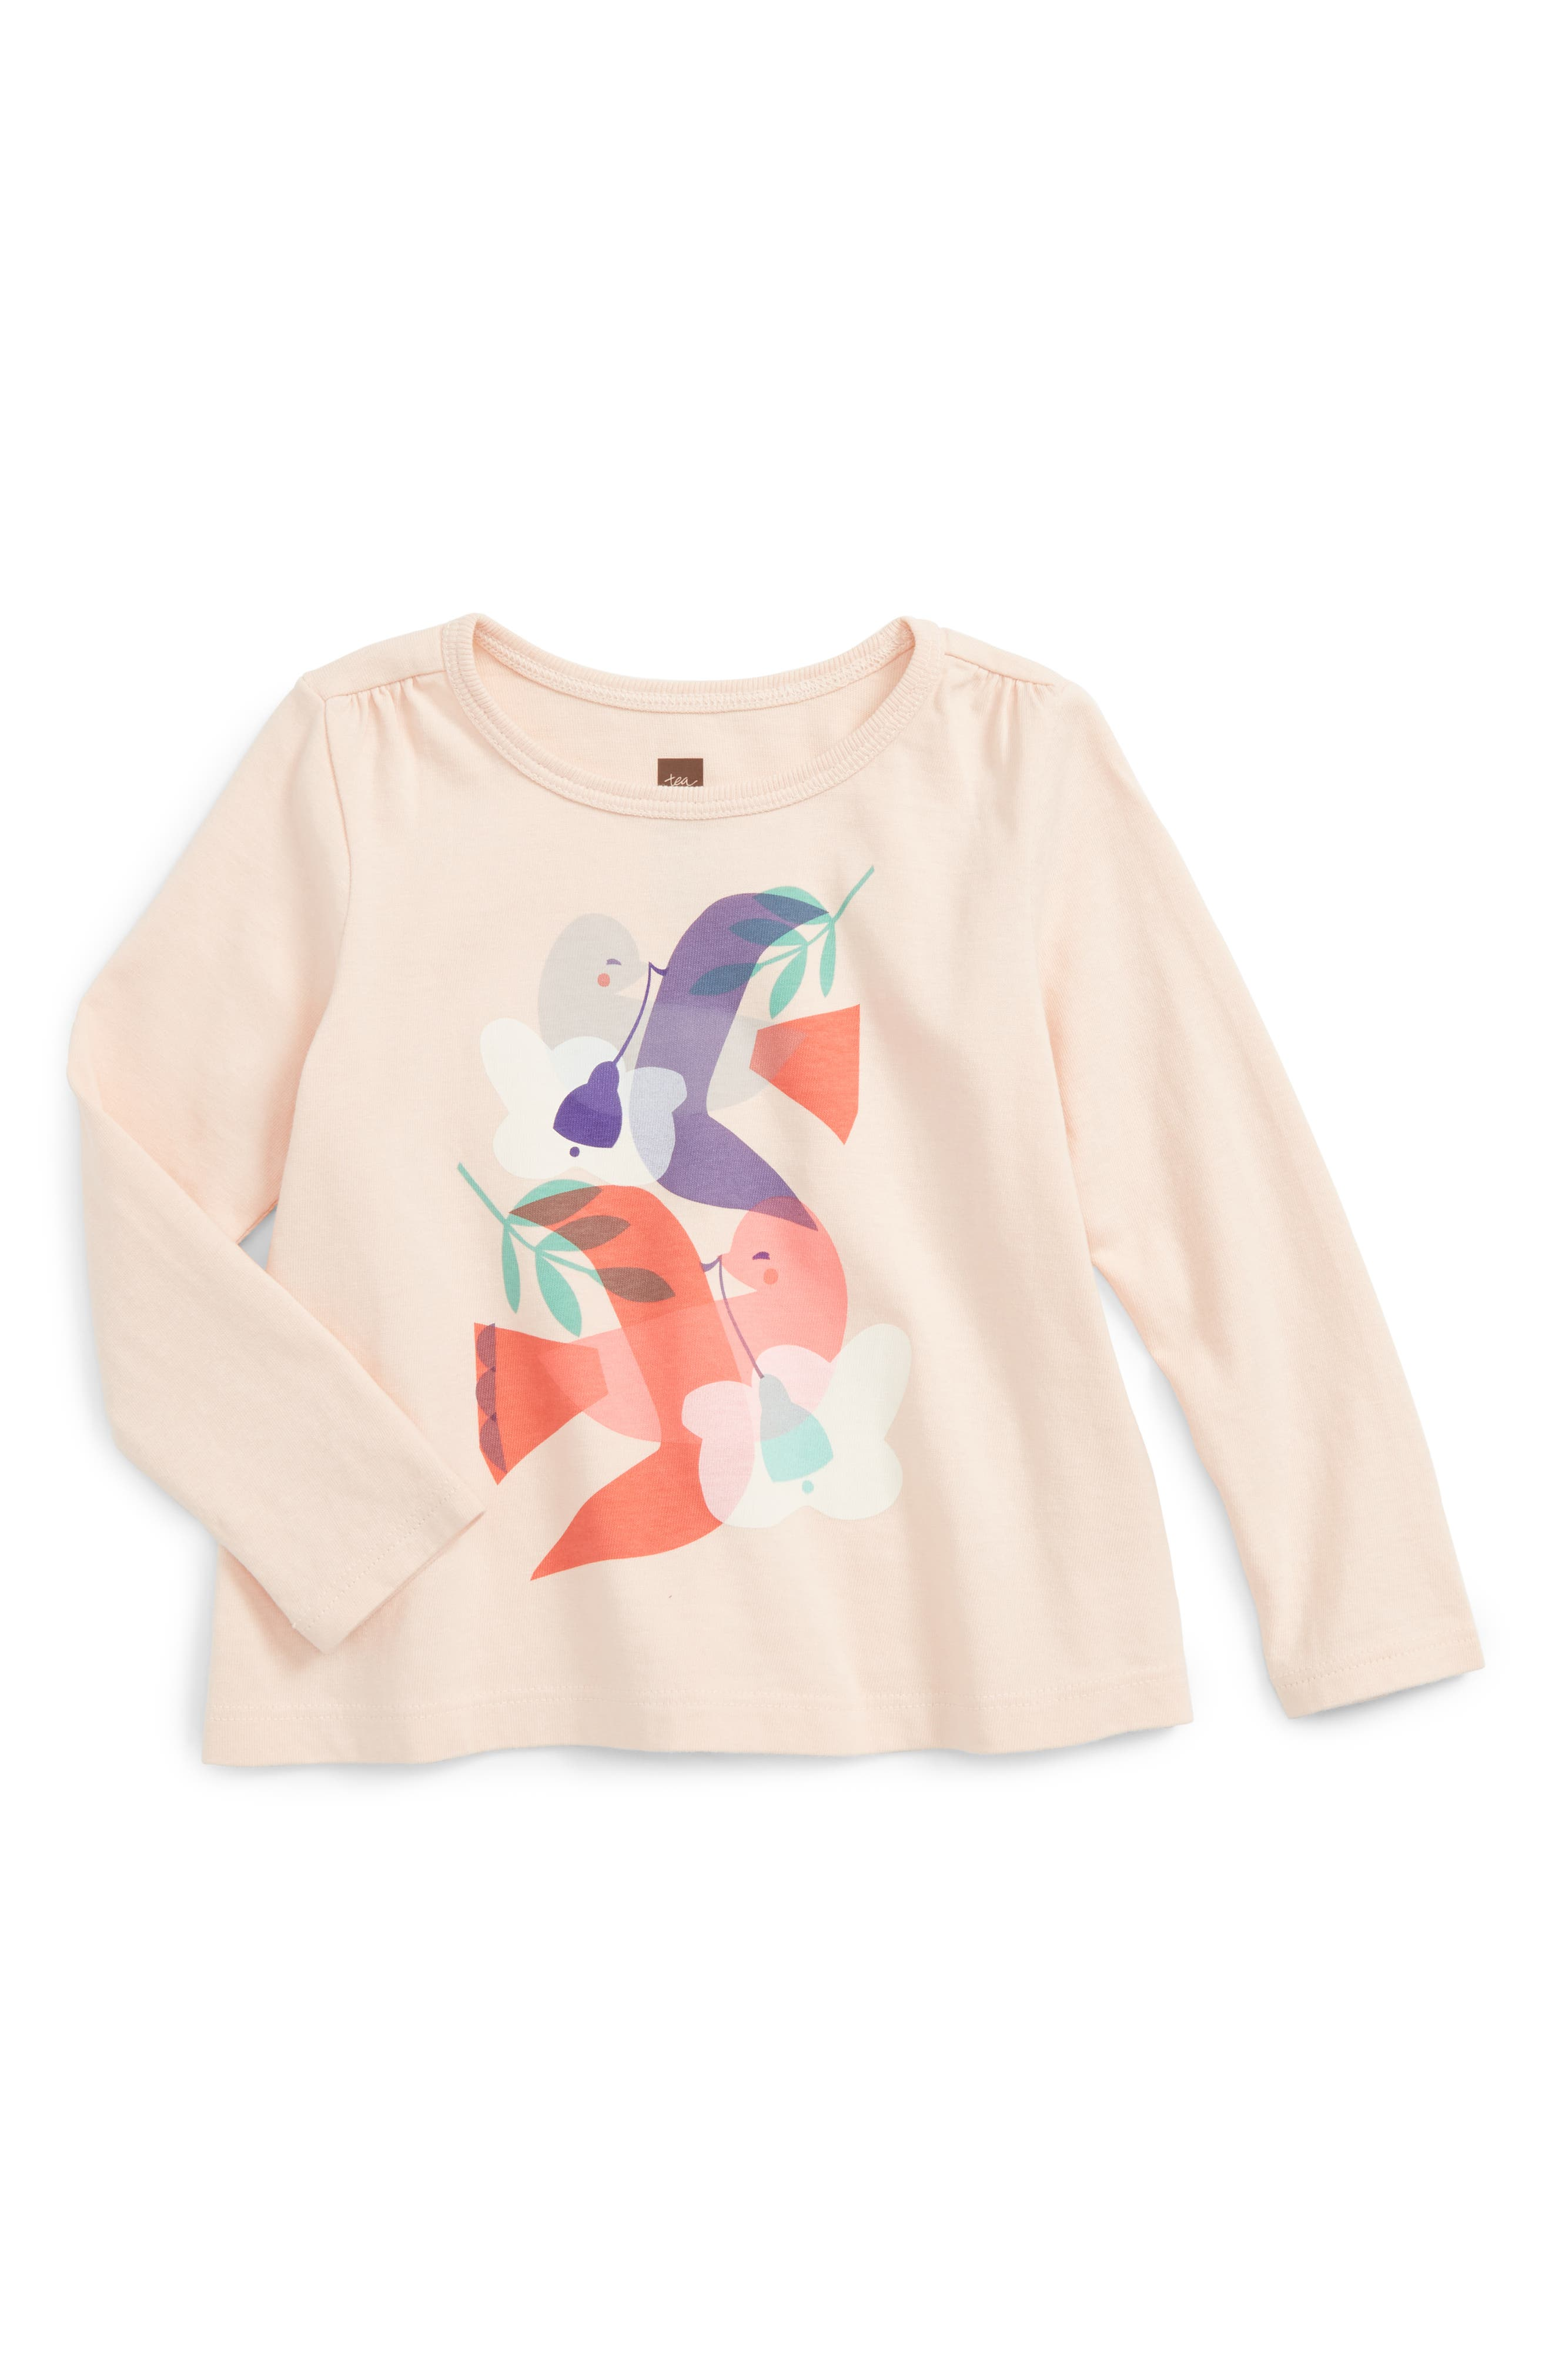 Tea Collection Eun Graphic Tee (Baby Girls)